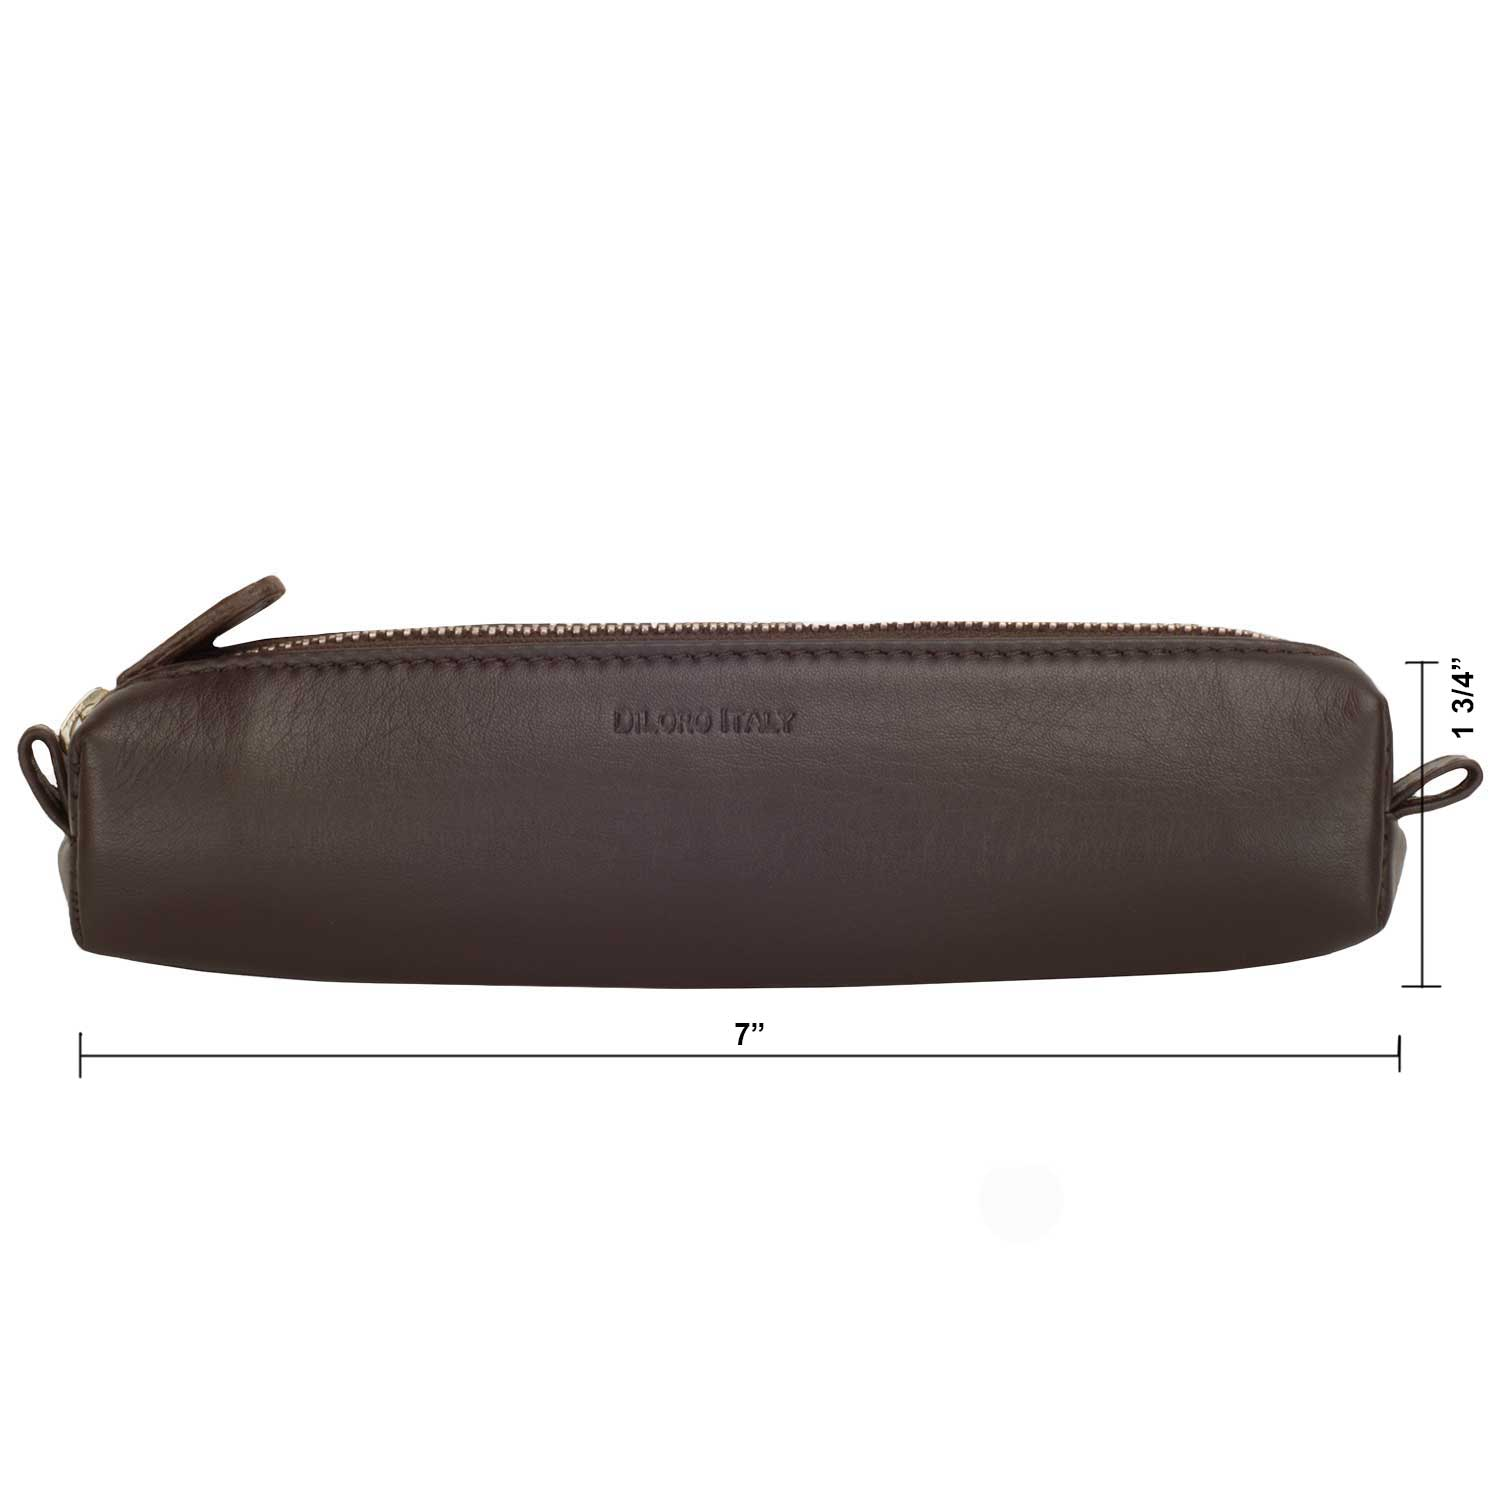 Multi-Purpose Zippered Leather Pen Pencil Case Pouch in Various Colors - Dark Brown (dimensions)